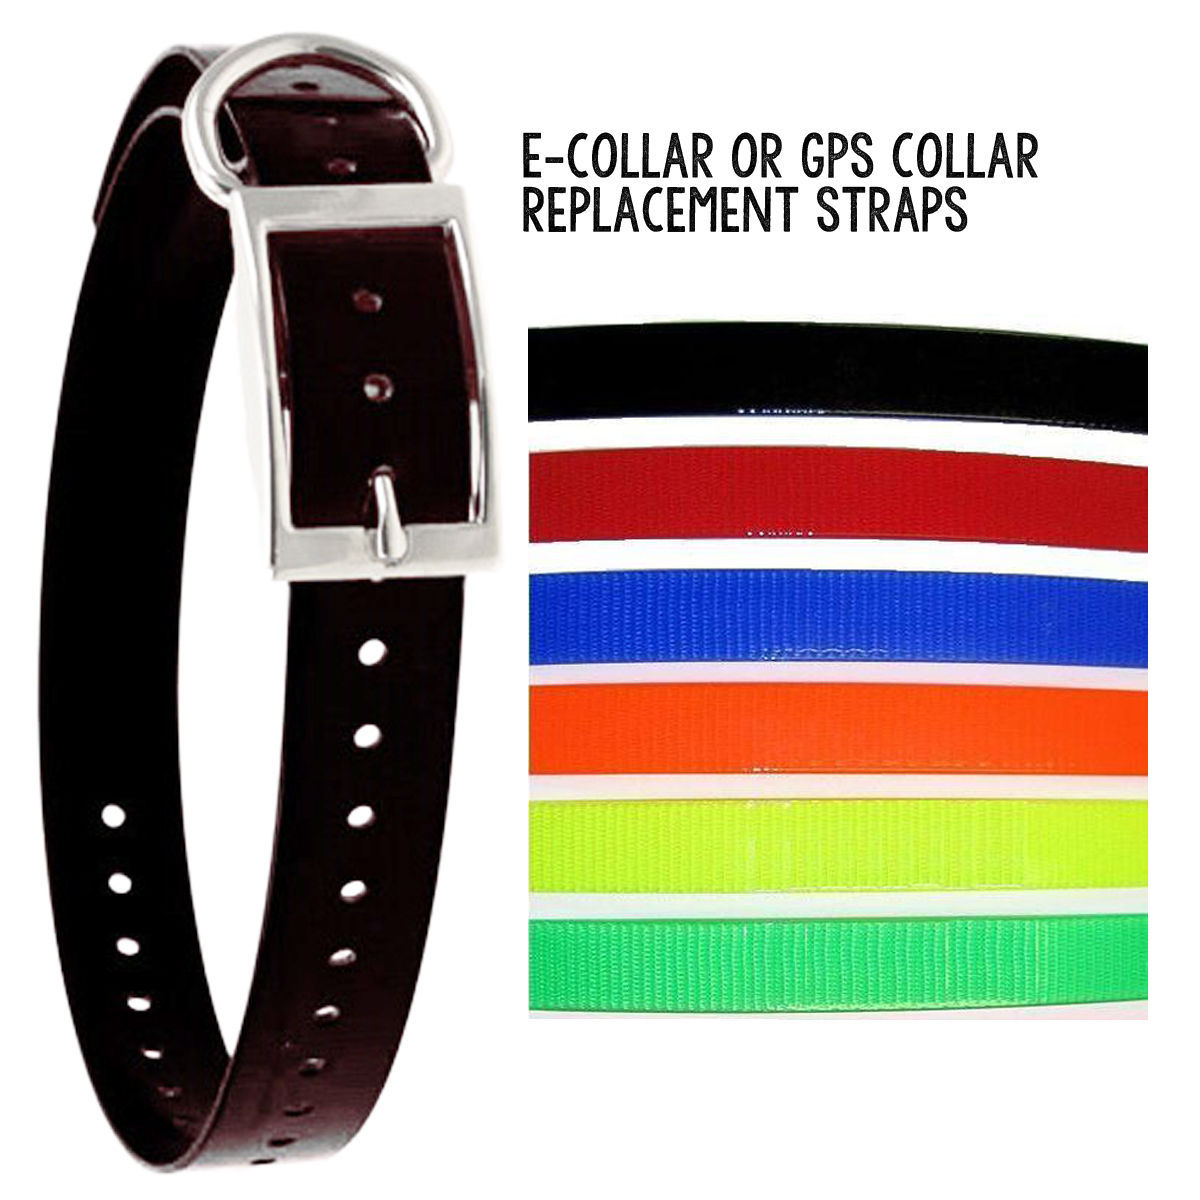 E-collar, Bark Collar, GPS 3/4 Inch Color Universal Replacement Strap